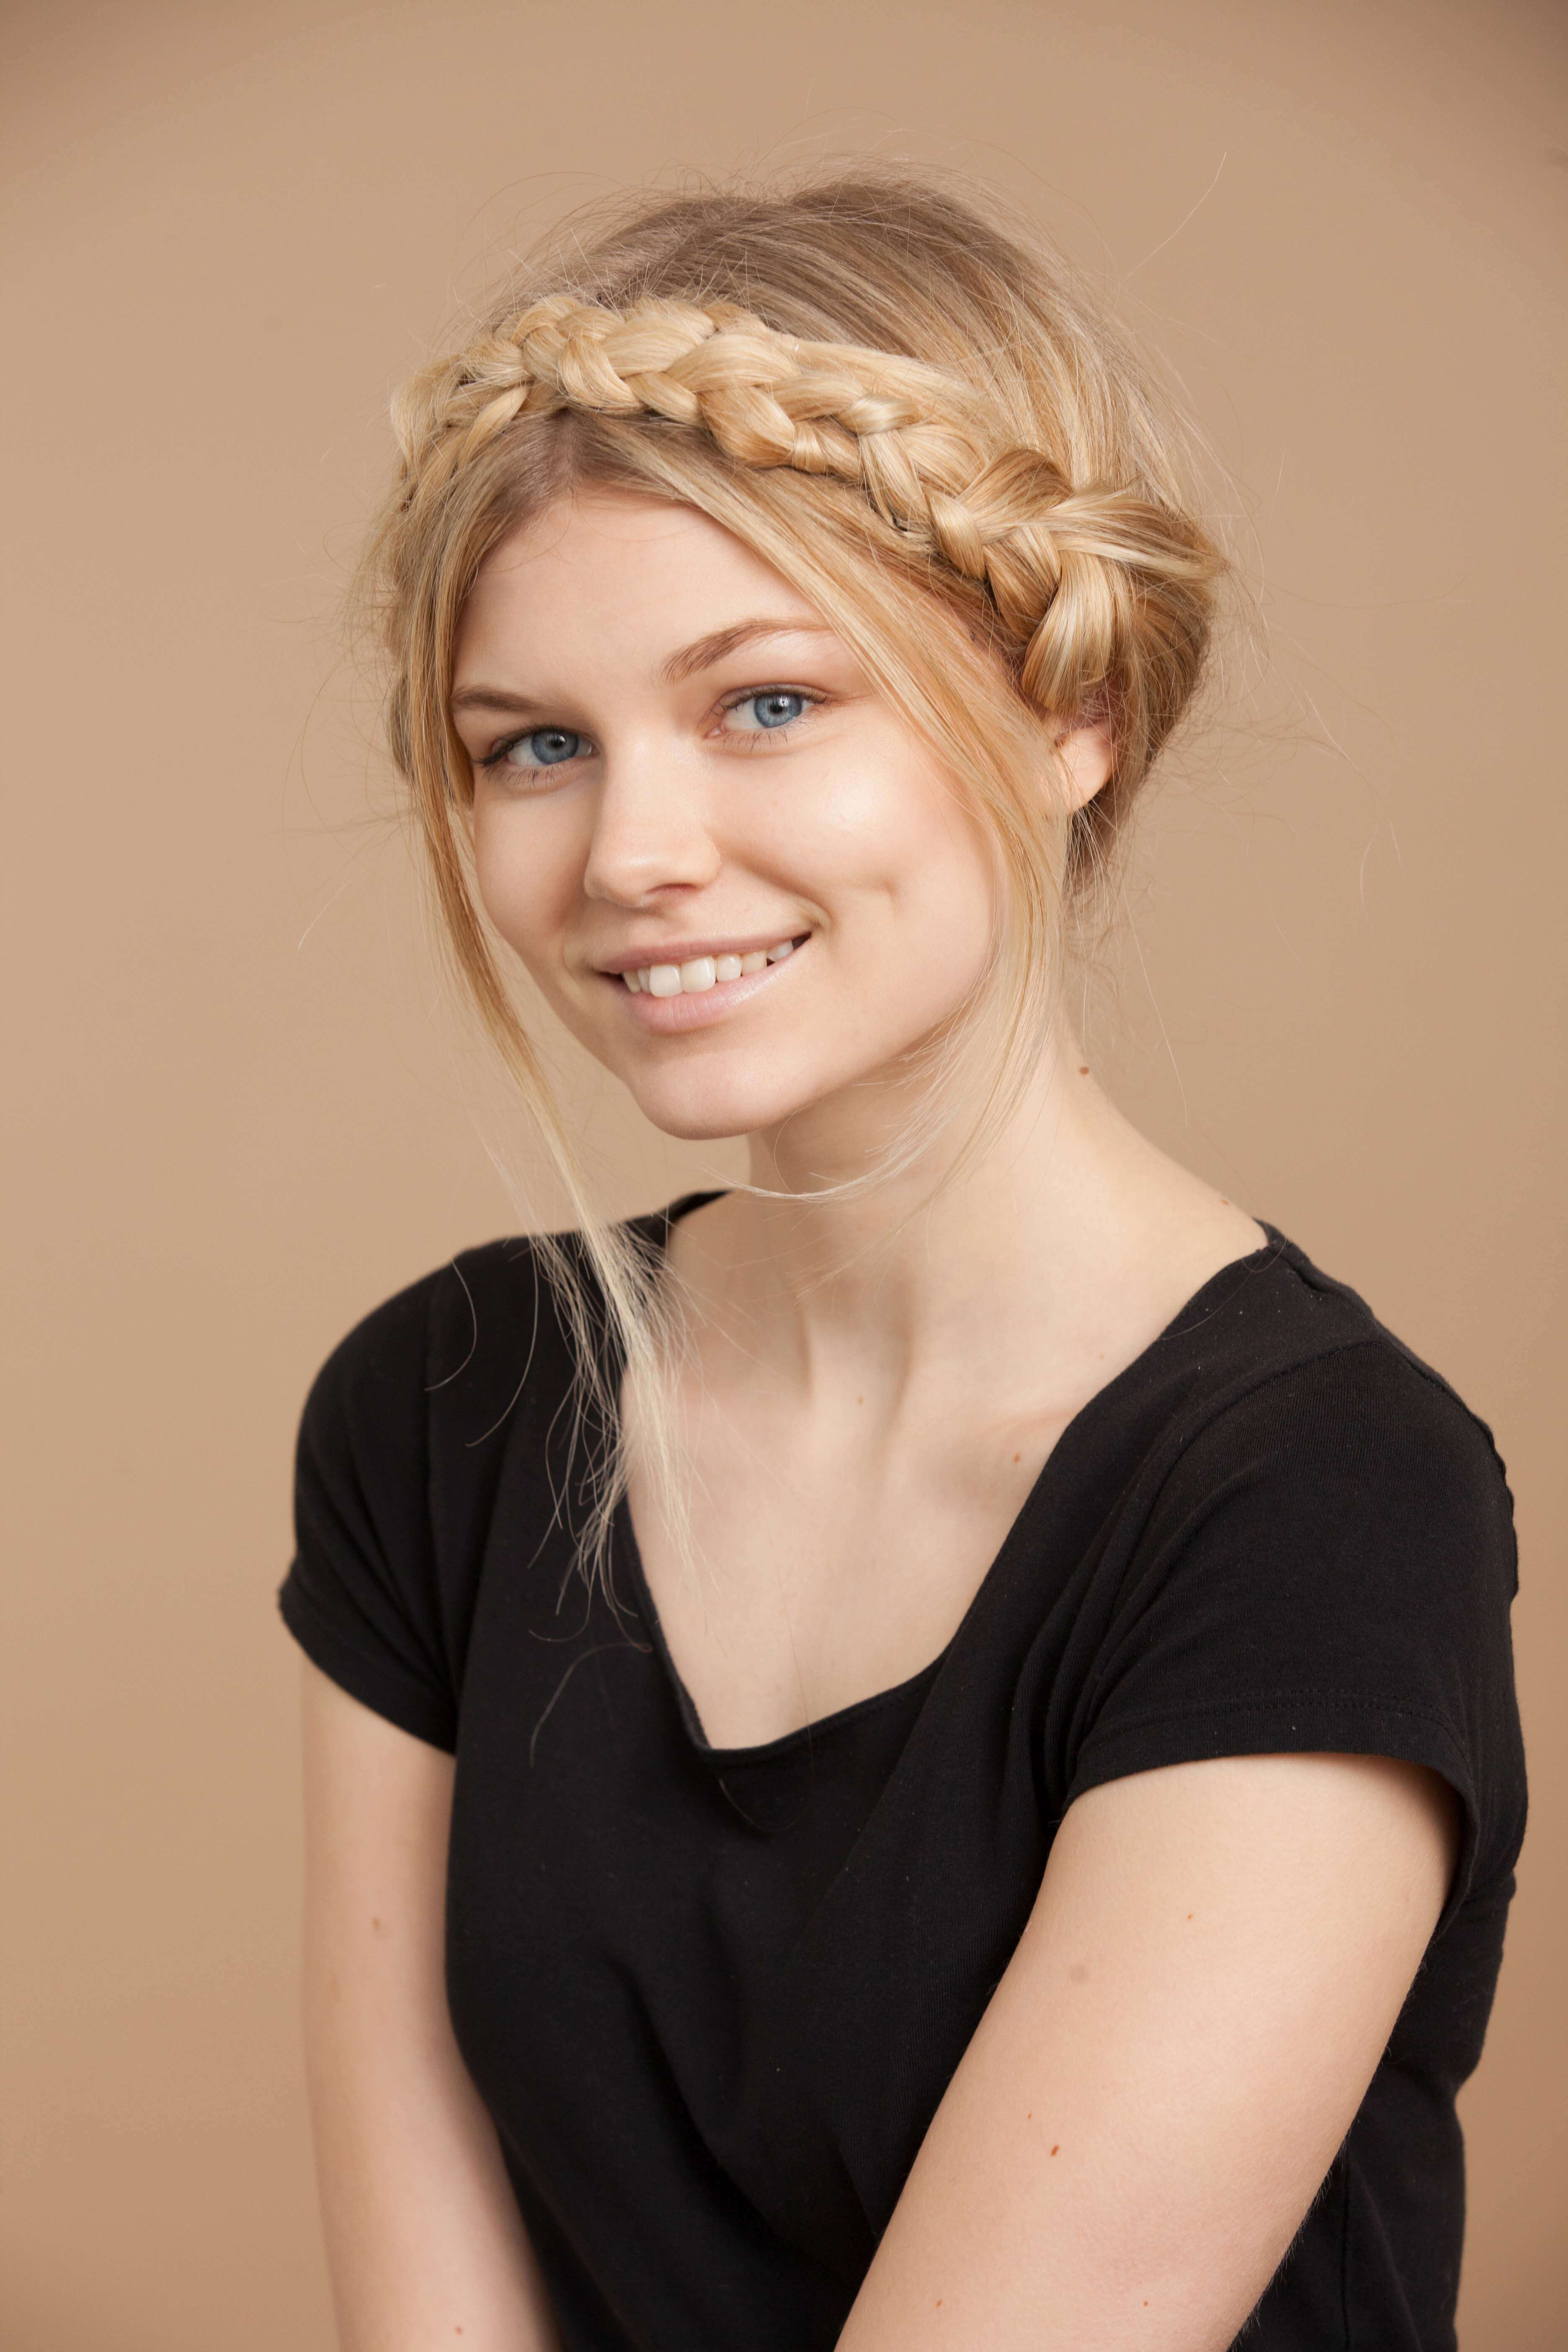 quick and easy hairstyles: All Things Hair - IMAGE - milkmaid braid